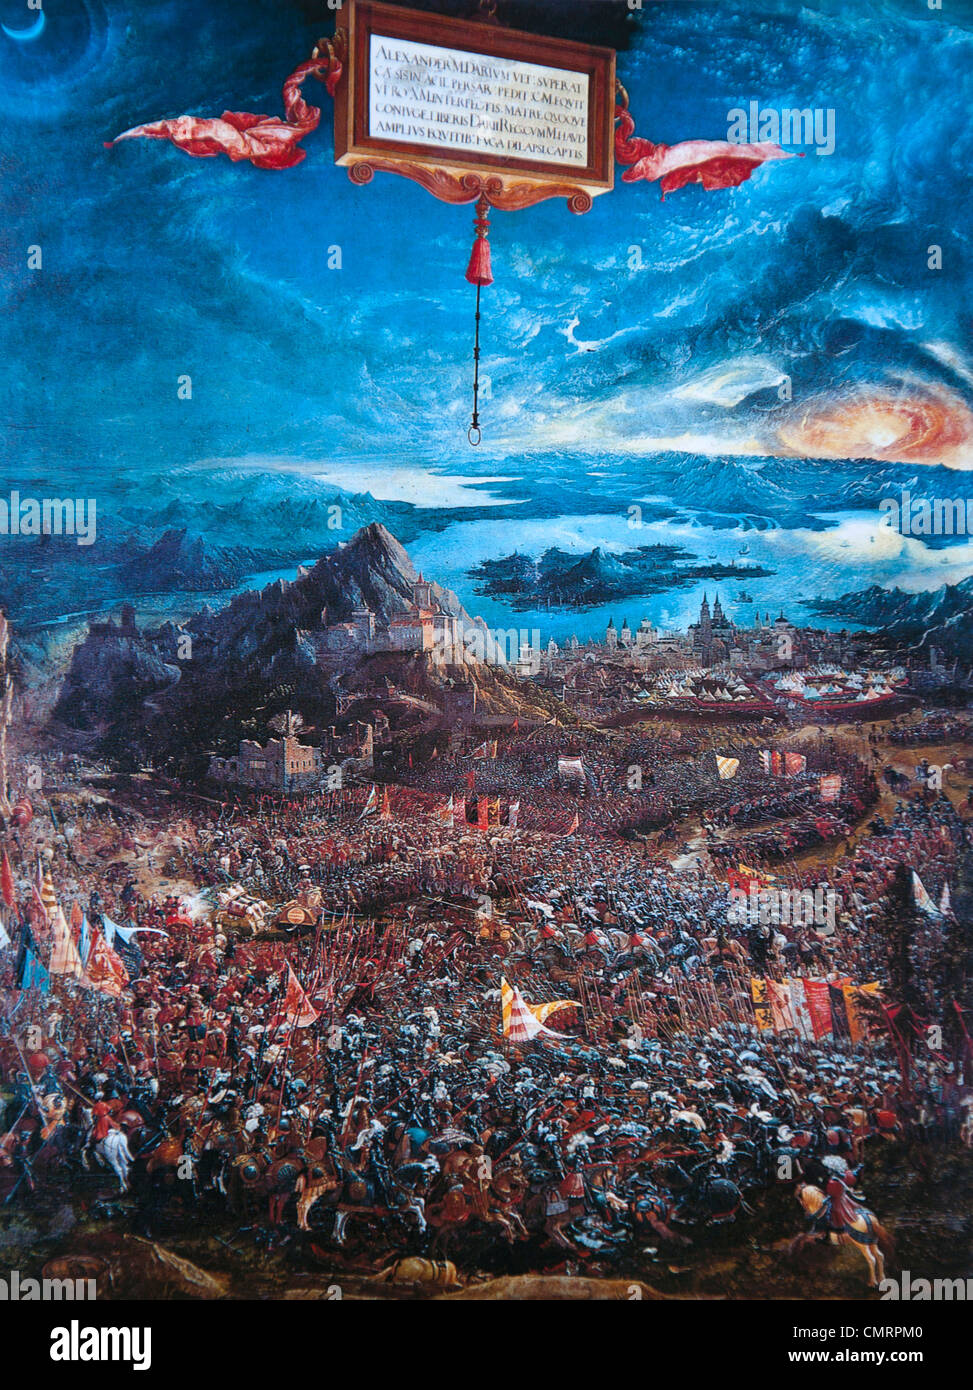 Albrecht Altdorfer: The Battle of Alexander at Issus, 1529 (Alexander's  Victory)